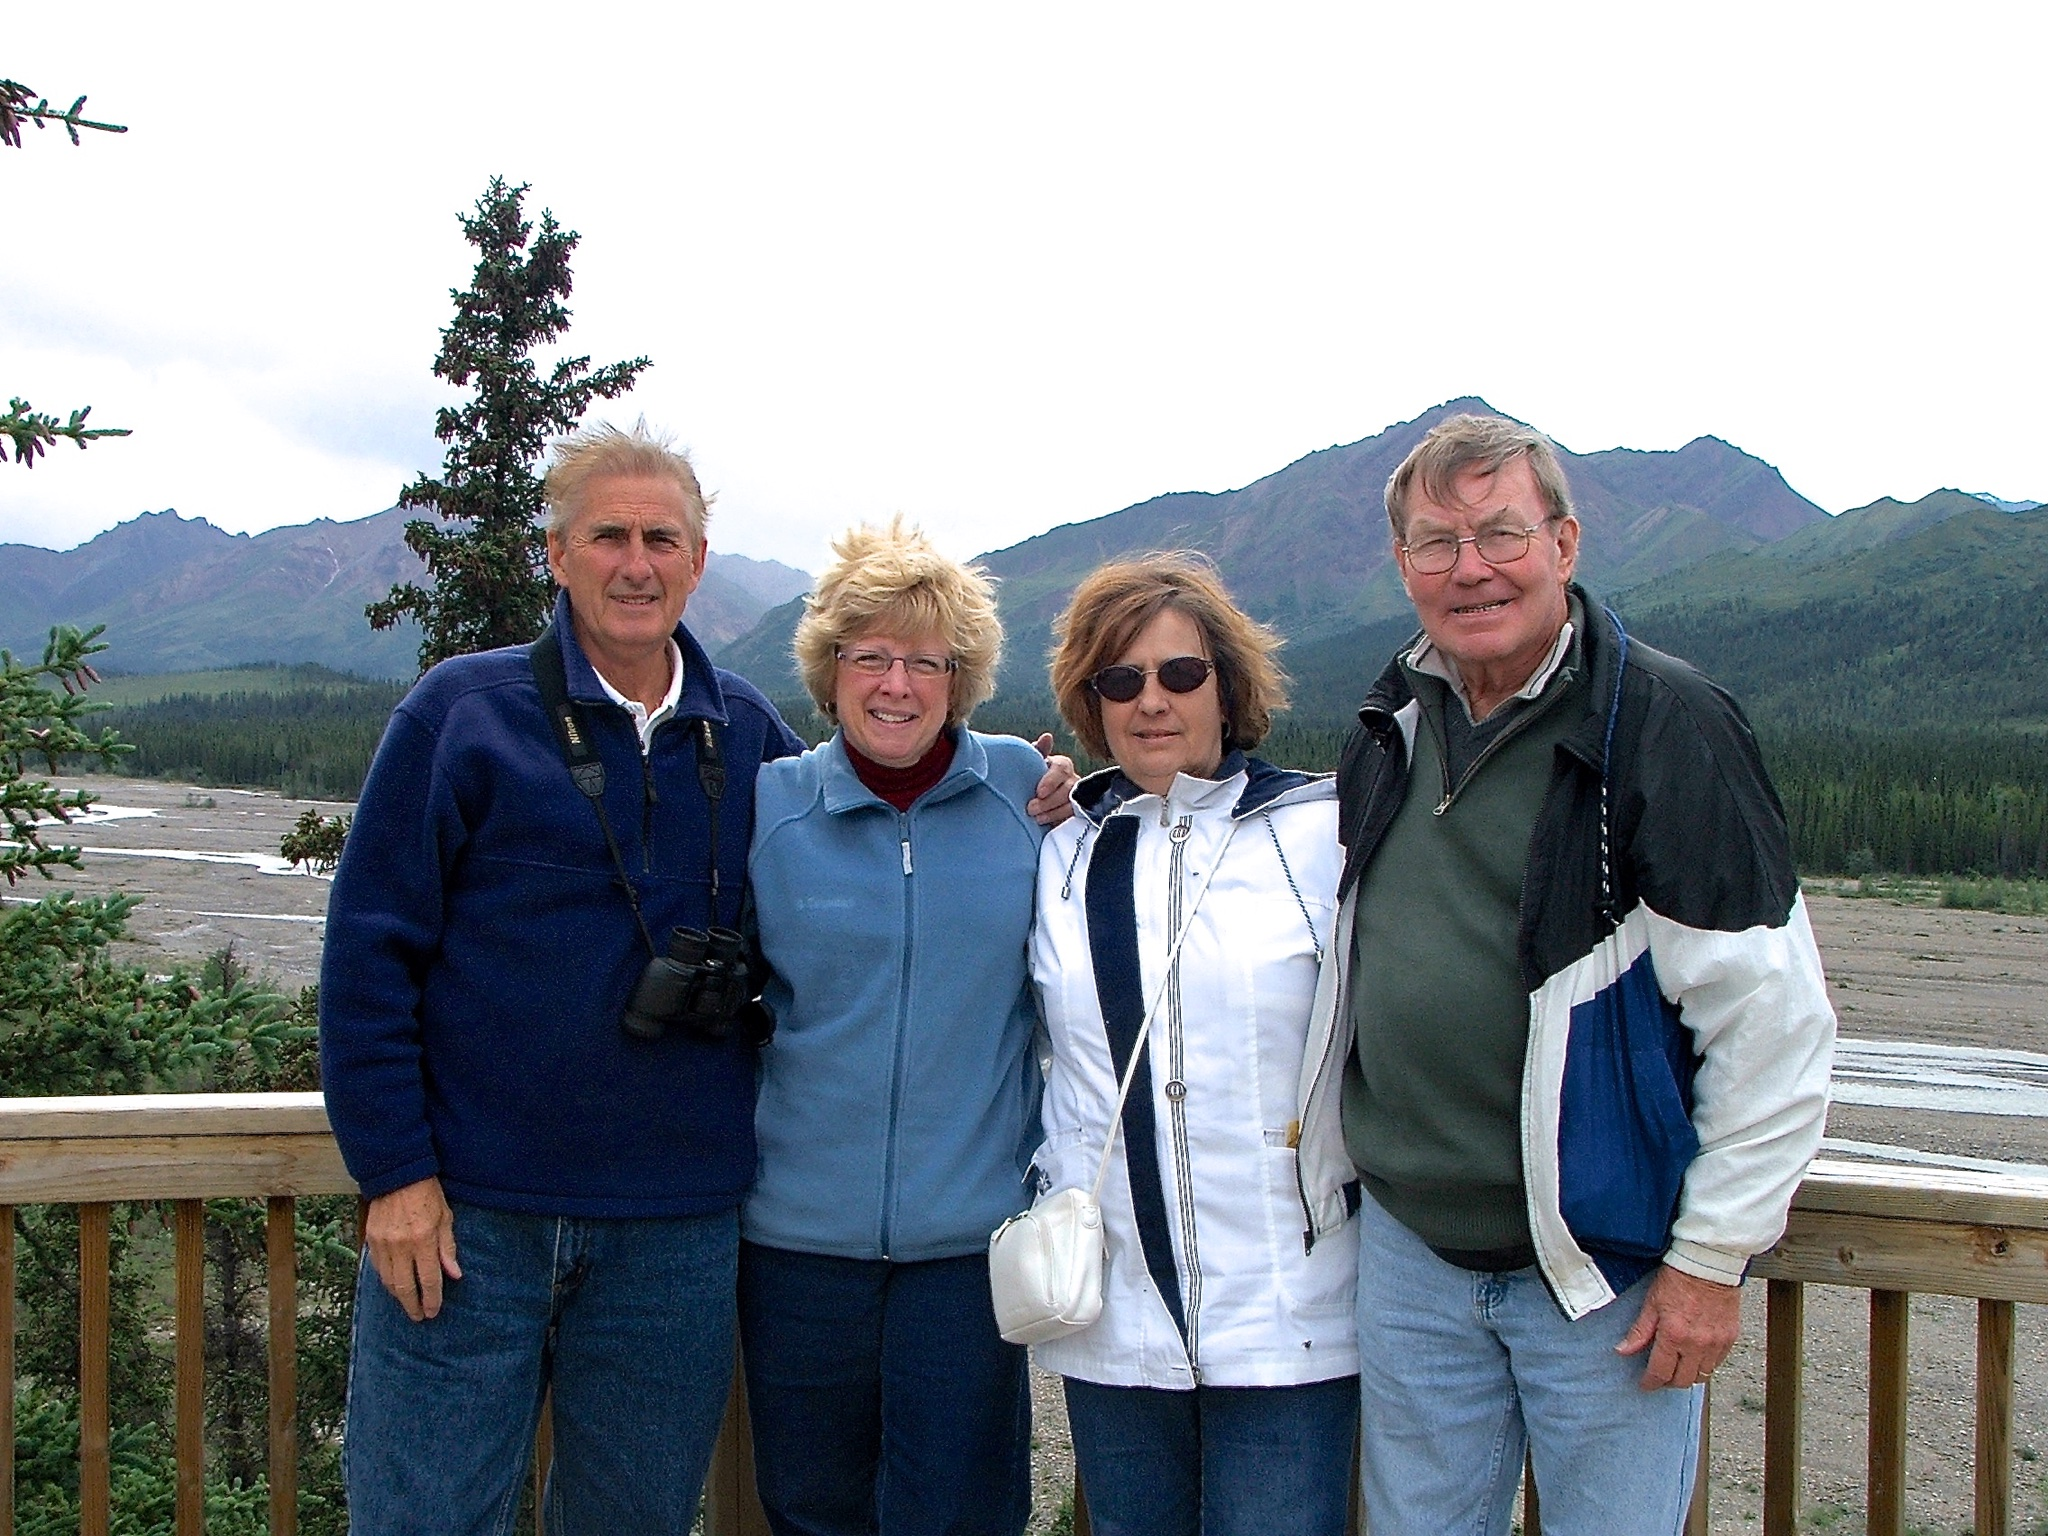 ALASKA - Only one of many wonderful times spent together filled with adventure and laughter. Sadly missed! Much loved! More brother than brother-in- law!